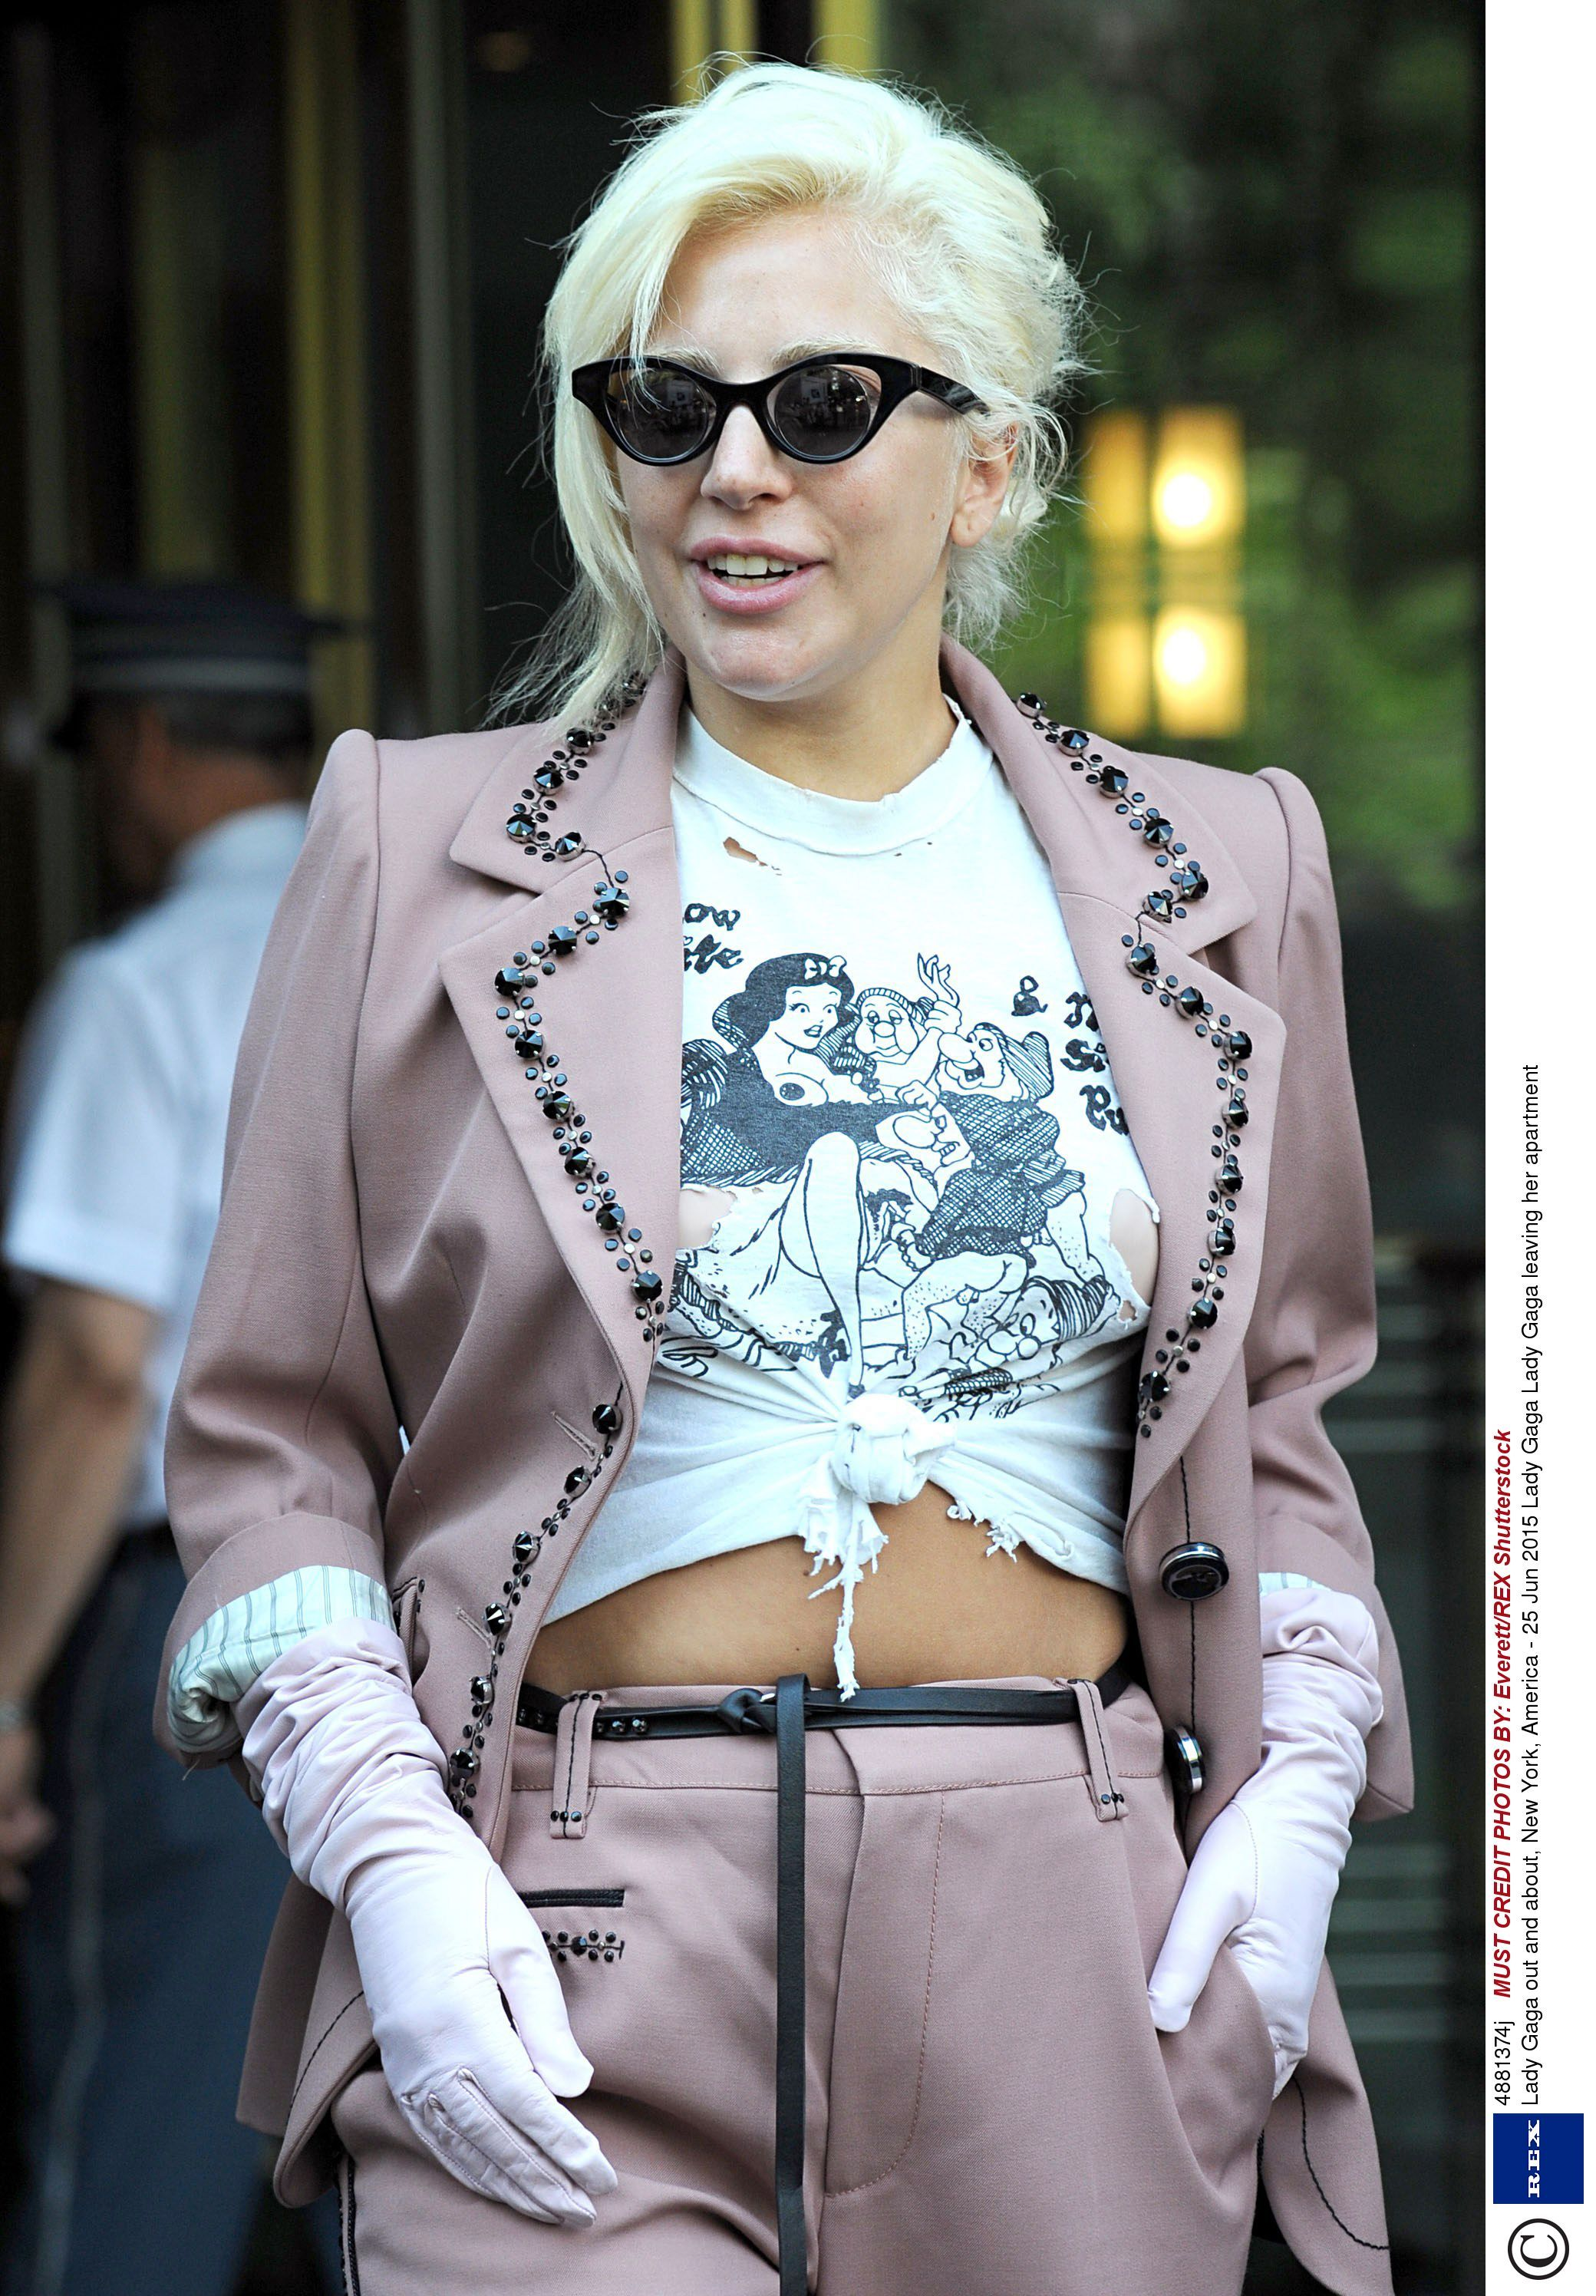 Gaga S Explicit T Shirt Has Ruined Our Childhood